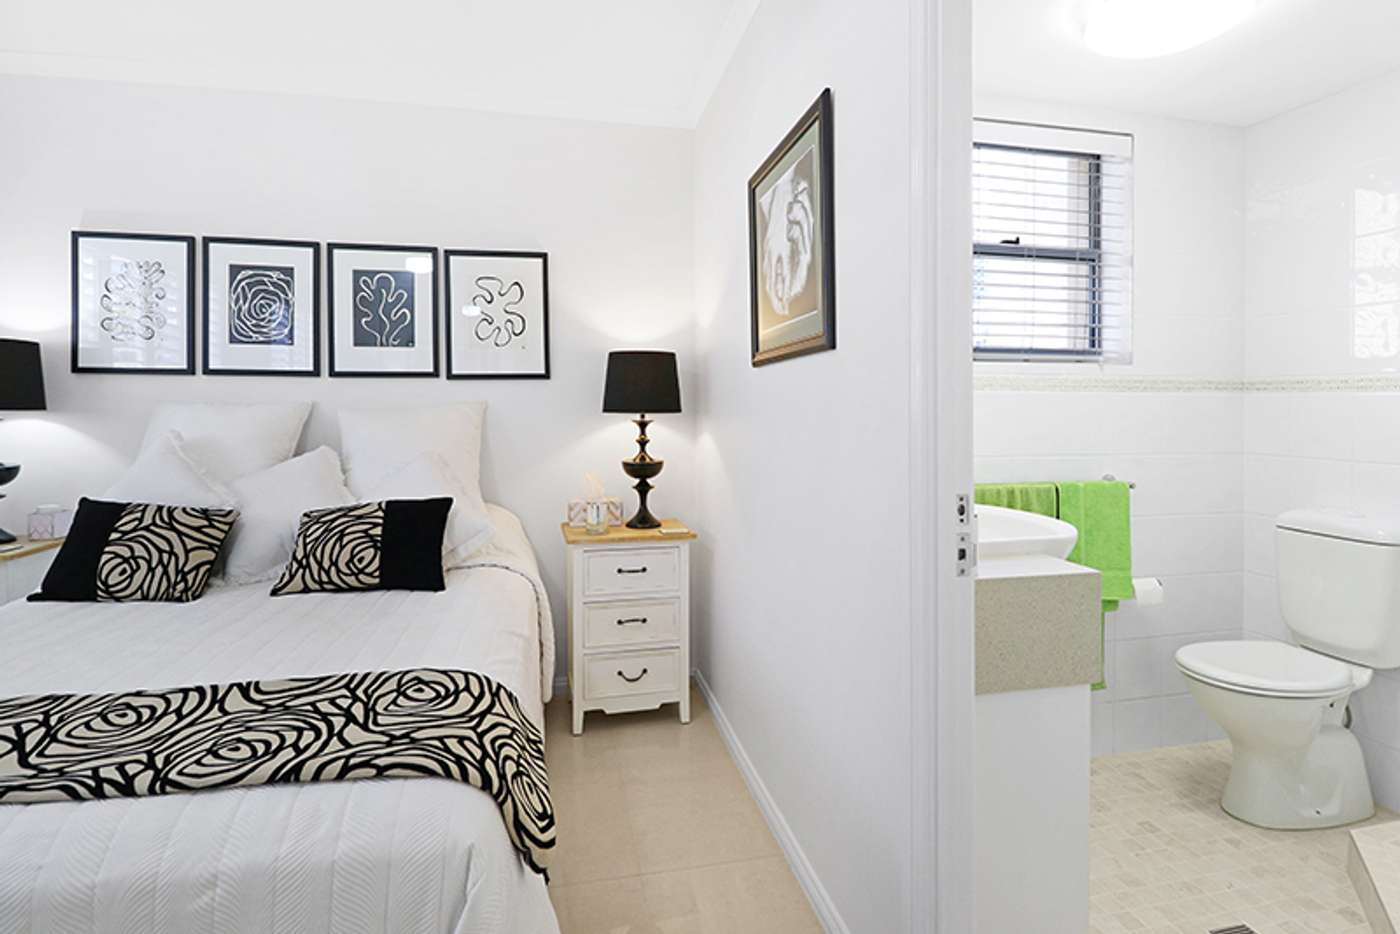 Seventh view of Homely apartment listing, 3/6 First Avenue, Broadbeach QLD 4218